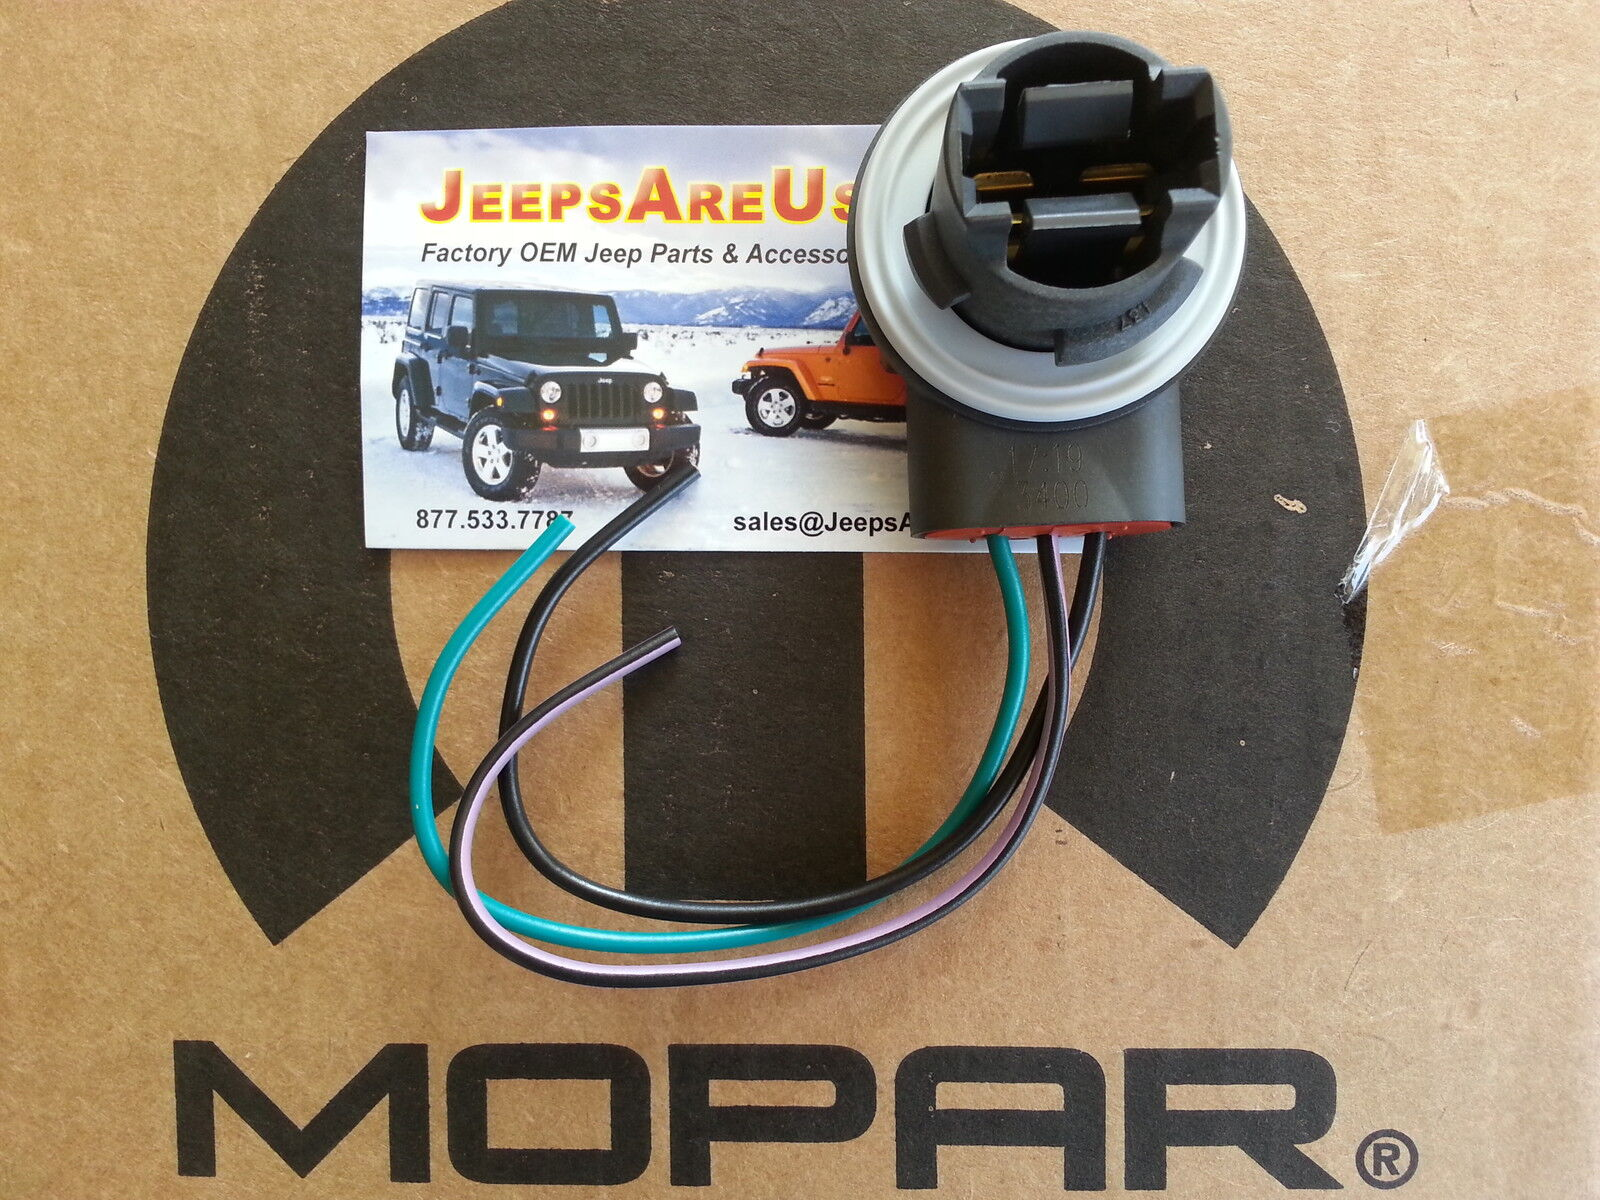 spartan turn signal wiring diagram spartan wiring diagrams description jeep turn signal wiring central vac relay wiring diagram gm t2ec16vhjhiffhc ie pbr6 nztweq~~60 57 jeep turn signal wiringhtml jeep spartan